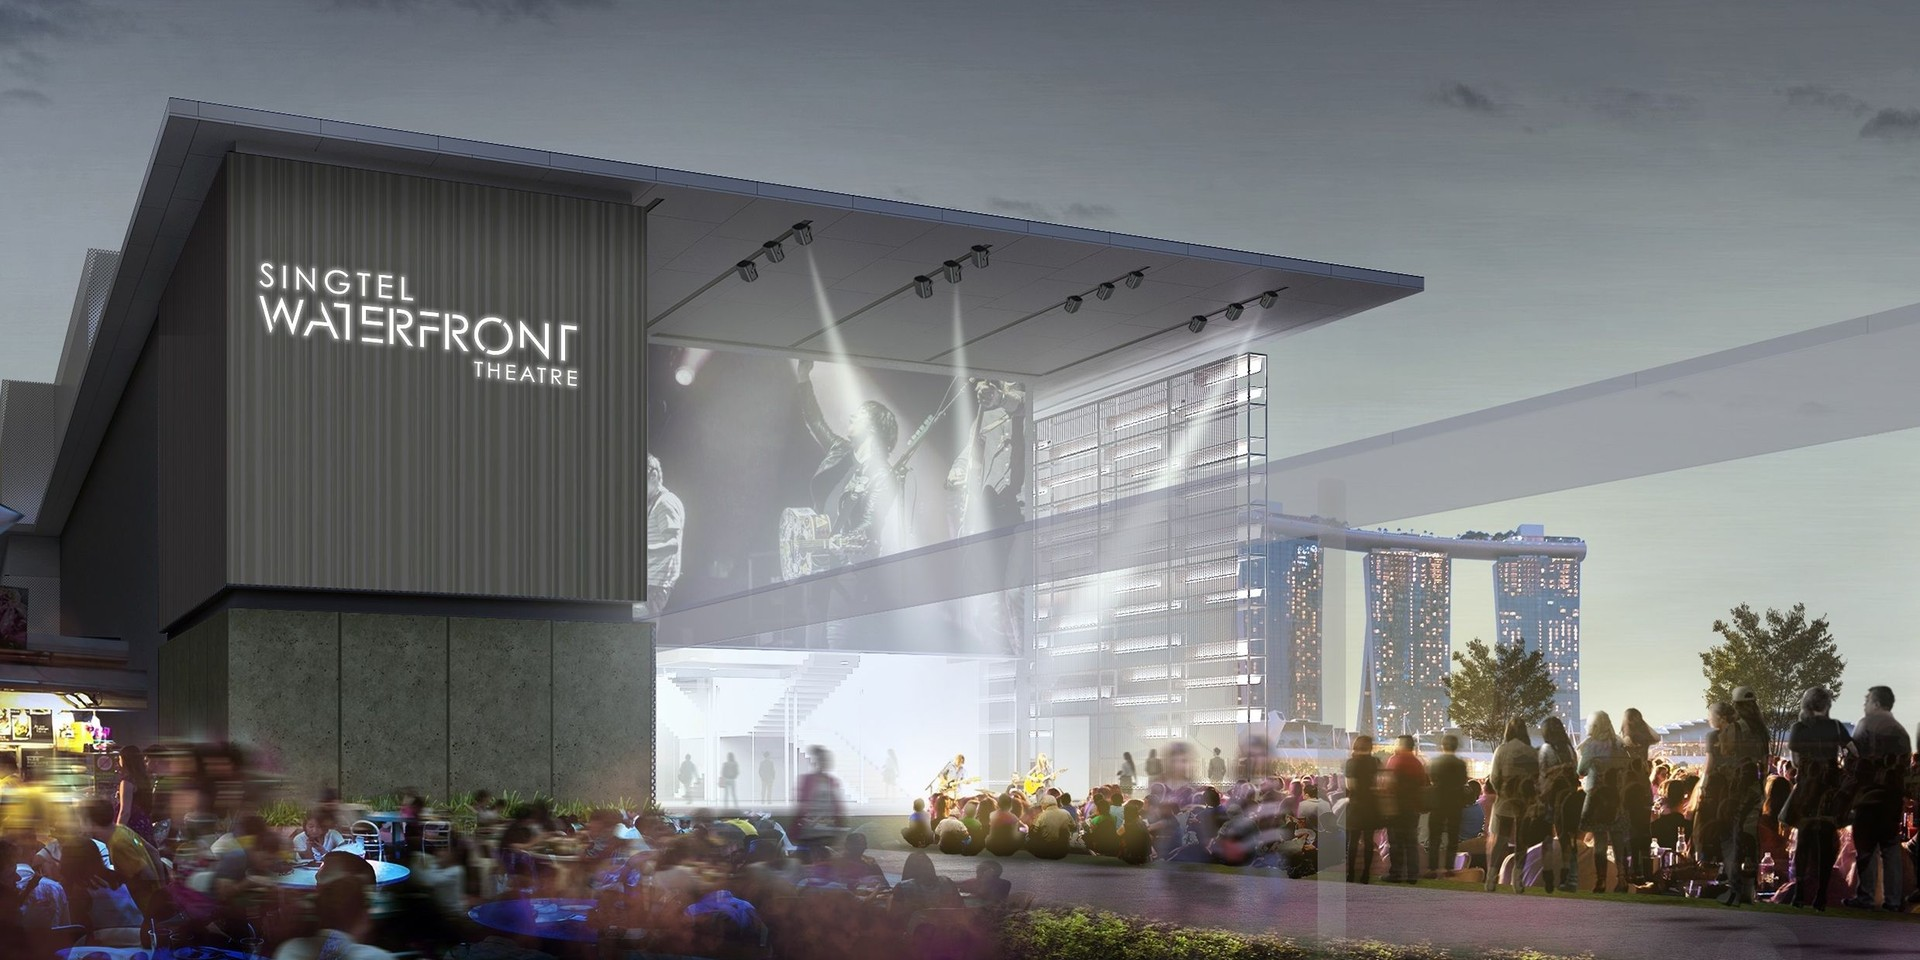 Esplanade launches initiatives to raise remaining S$9 million needed for upcoming Waterfront Theatre